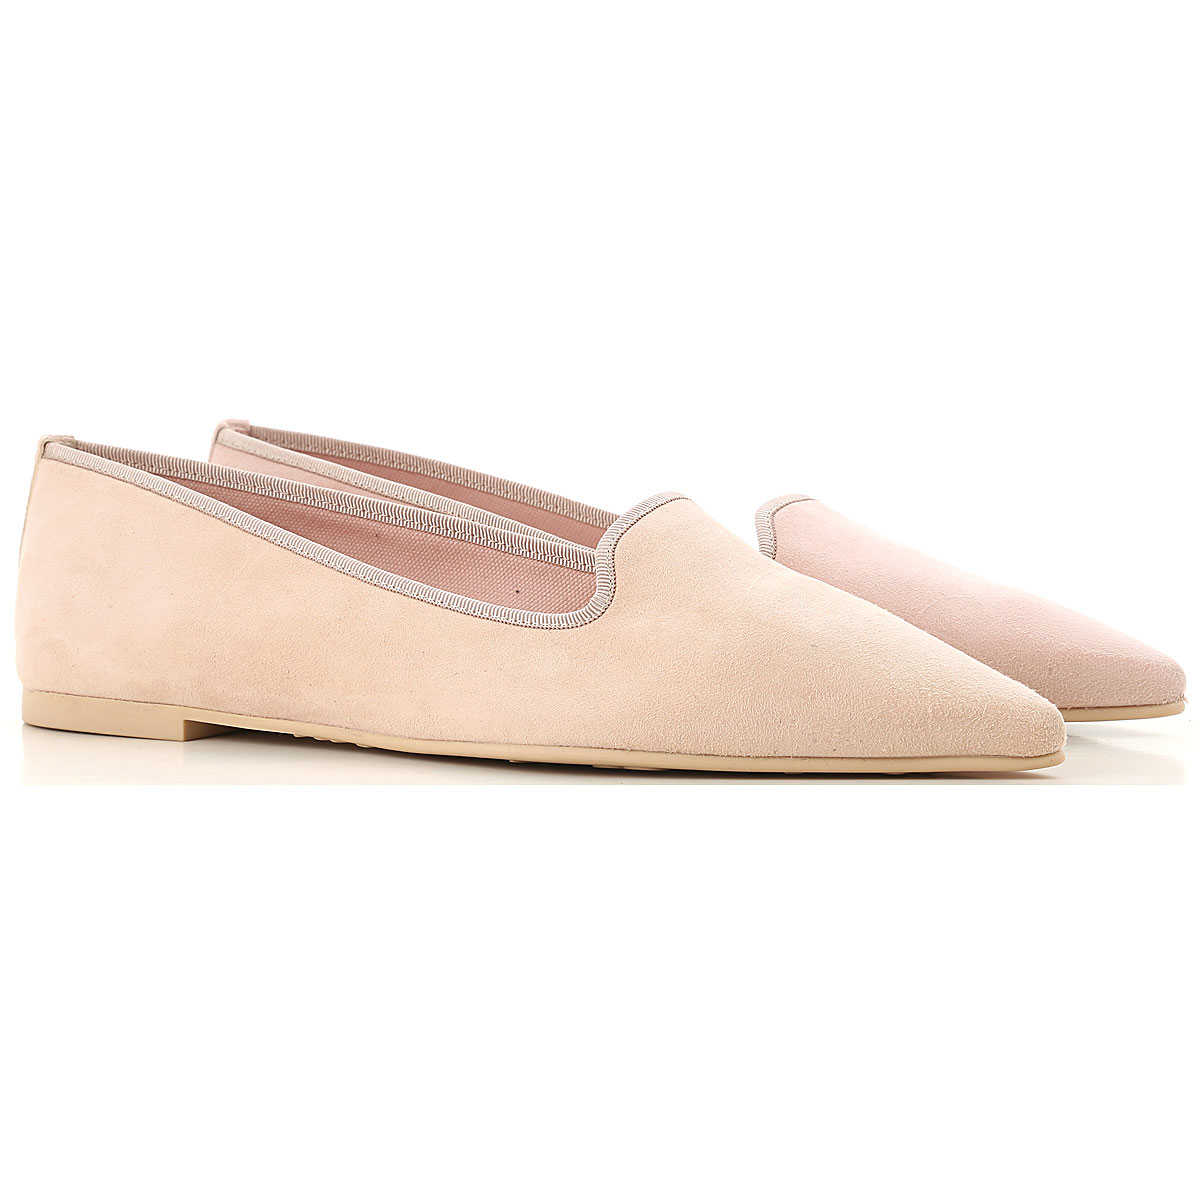 Pretty Ballerinas Ballet Flats Ballerina Shoes for Women On Sale in Outlet